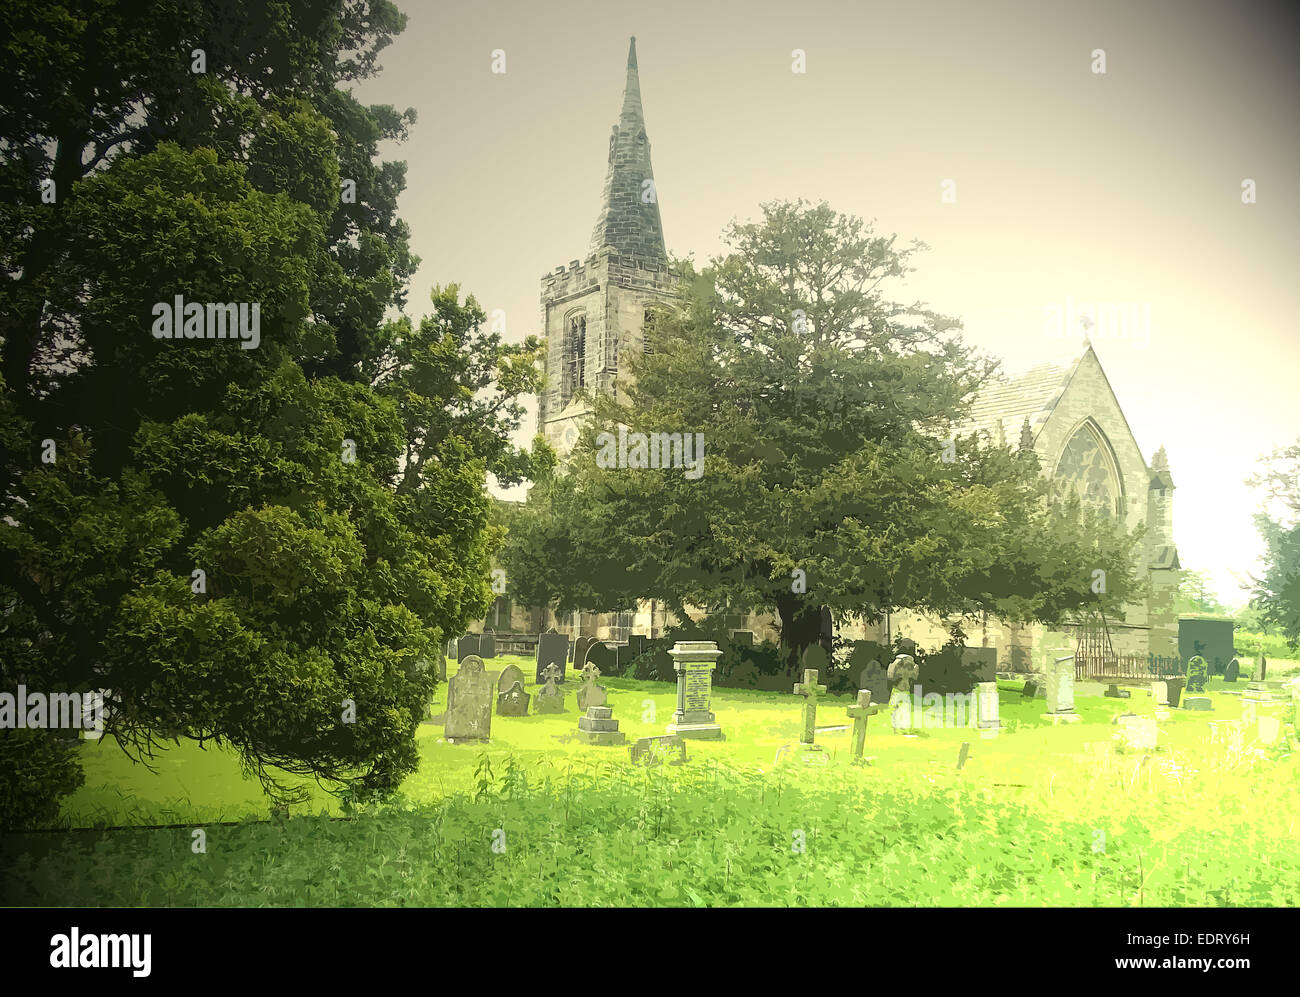 Church of All Saints, Mackworth, This church stands to the east of the medieval village and is pictured here - Stock Image